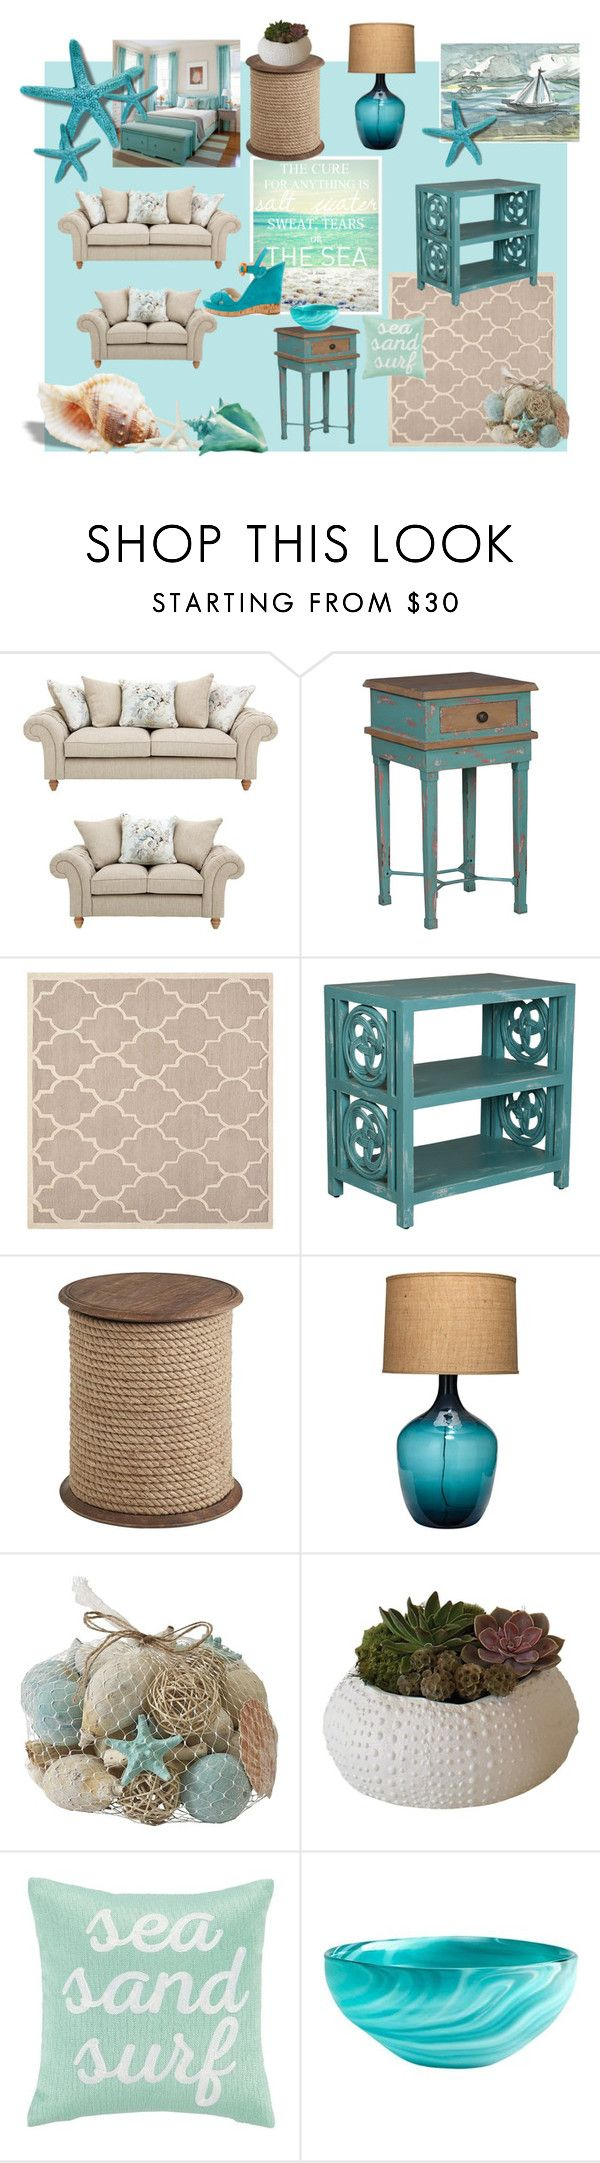 sea#home#decor#tiffany# by veronicavarani on Polyvore featuring interior, interiors, interior design, Casa, home decor, interior decorating, Pier 1 Imports, Jamie Young, Safavieh and Cyan Design